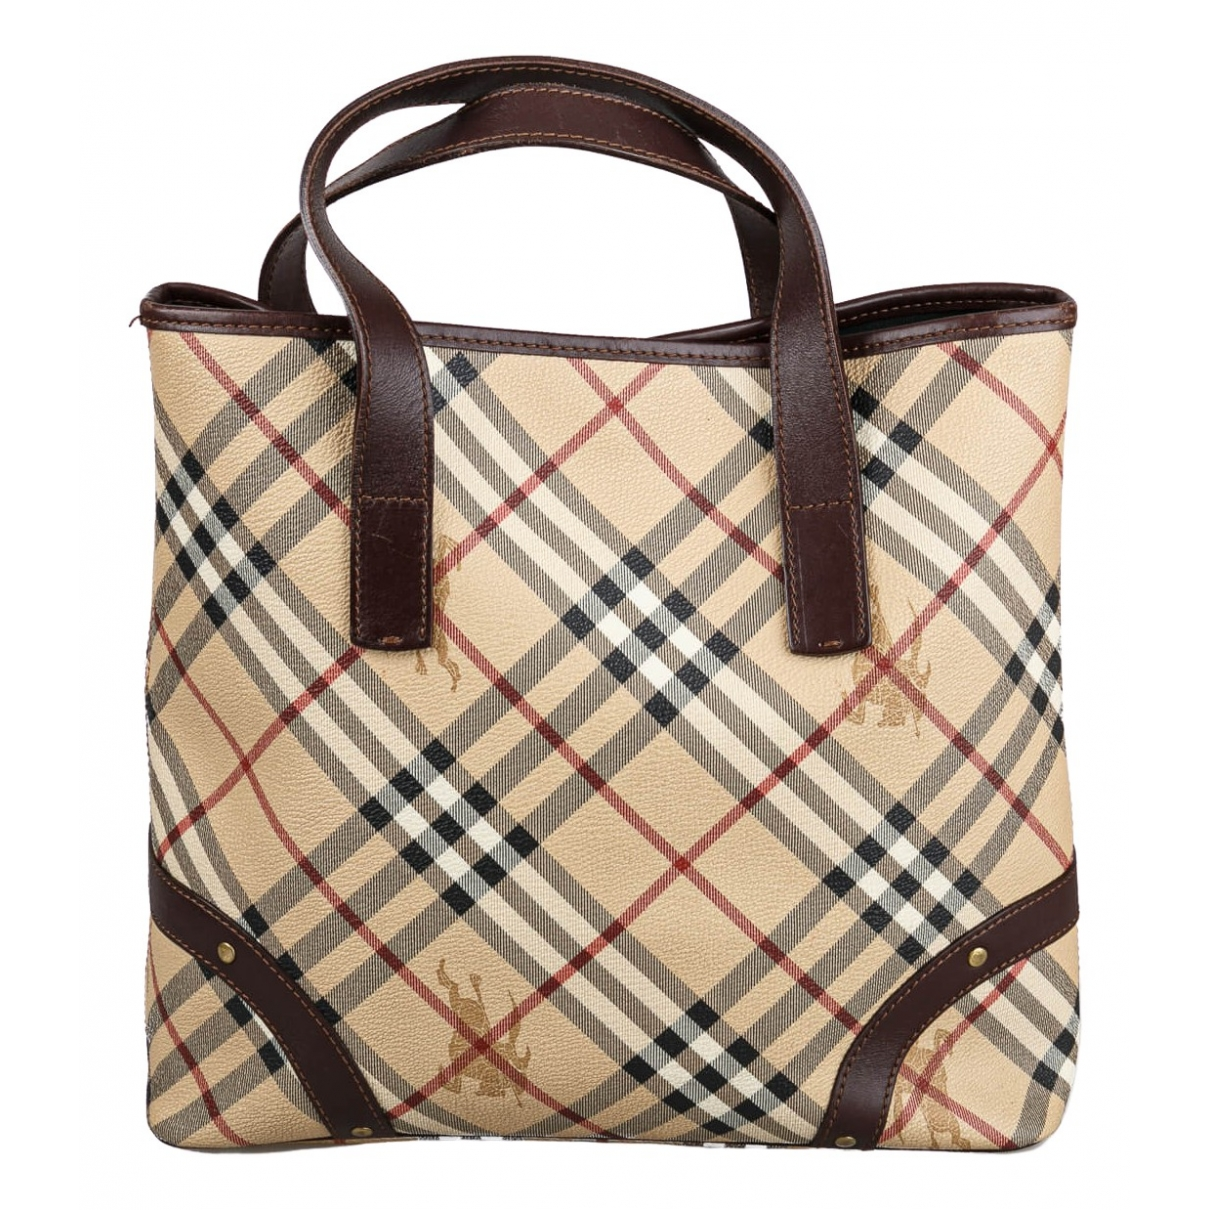 Burberry \N Multicolour Cloth handbag for Women \N